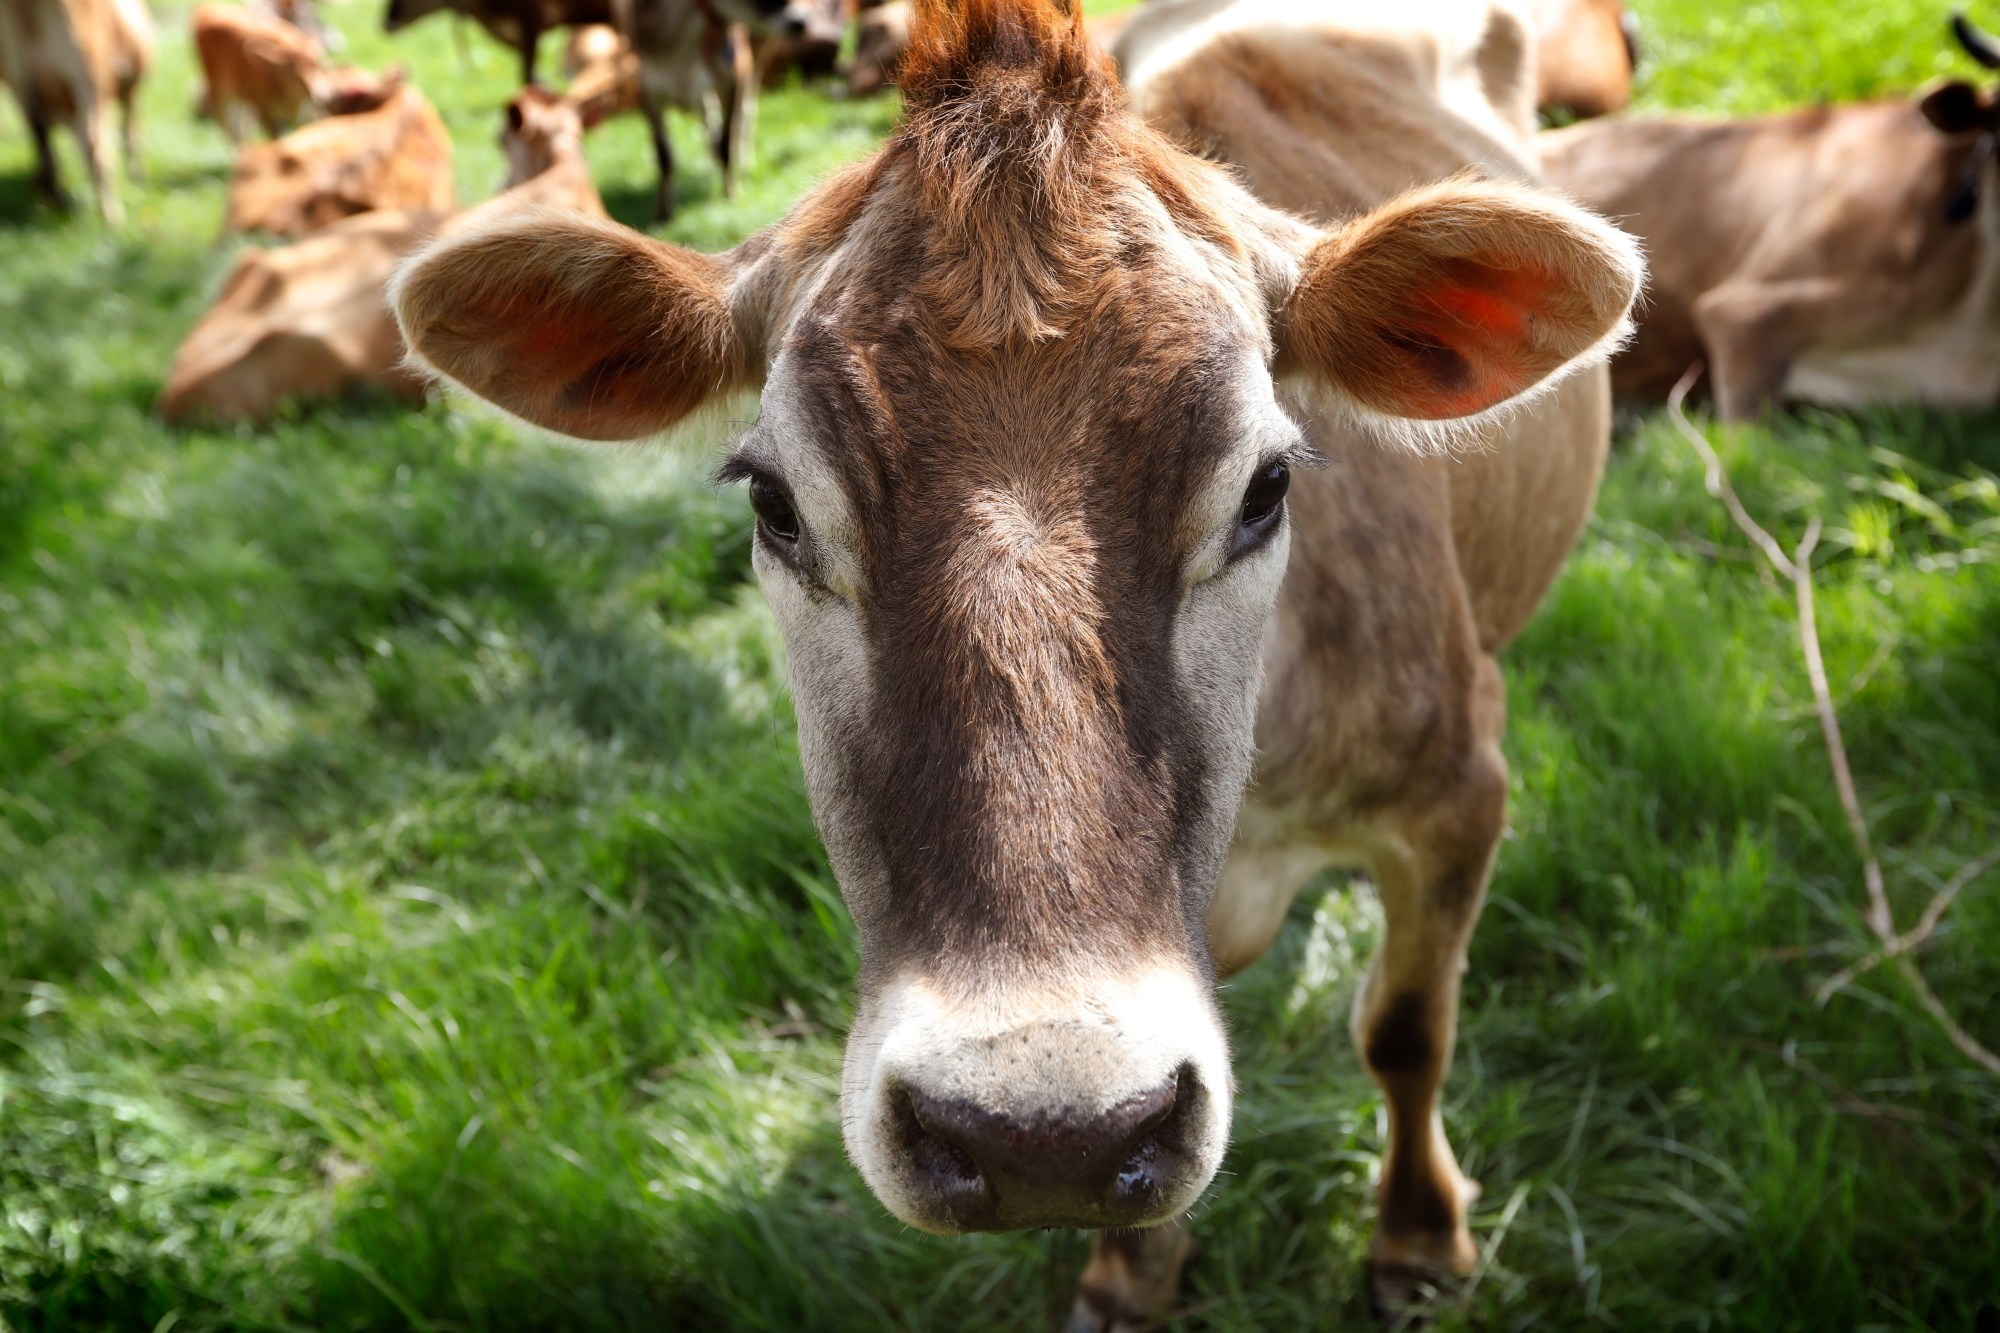 In this May 8, 2018 file photo, a cow feeds in a field on the Francis Thicke organic dairy farm in Fairfield, Iowa. (AP Photo/Charlie Neibergall, File)